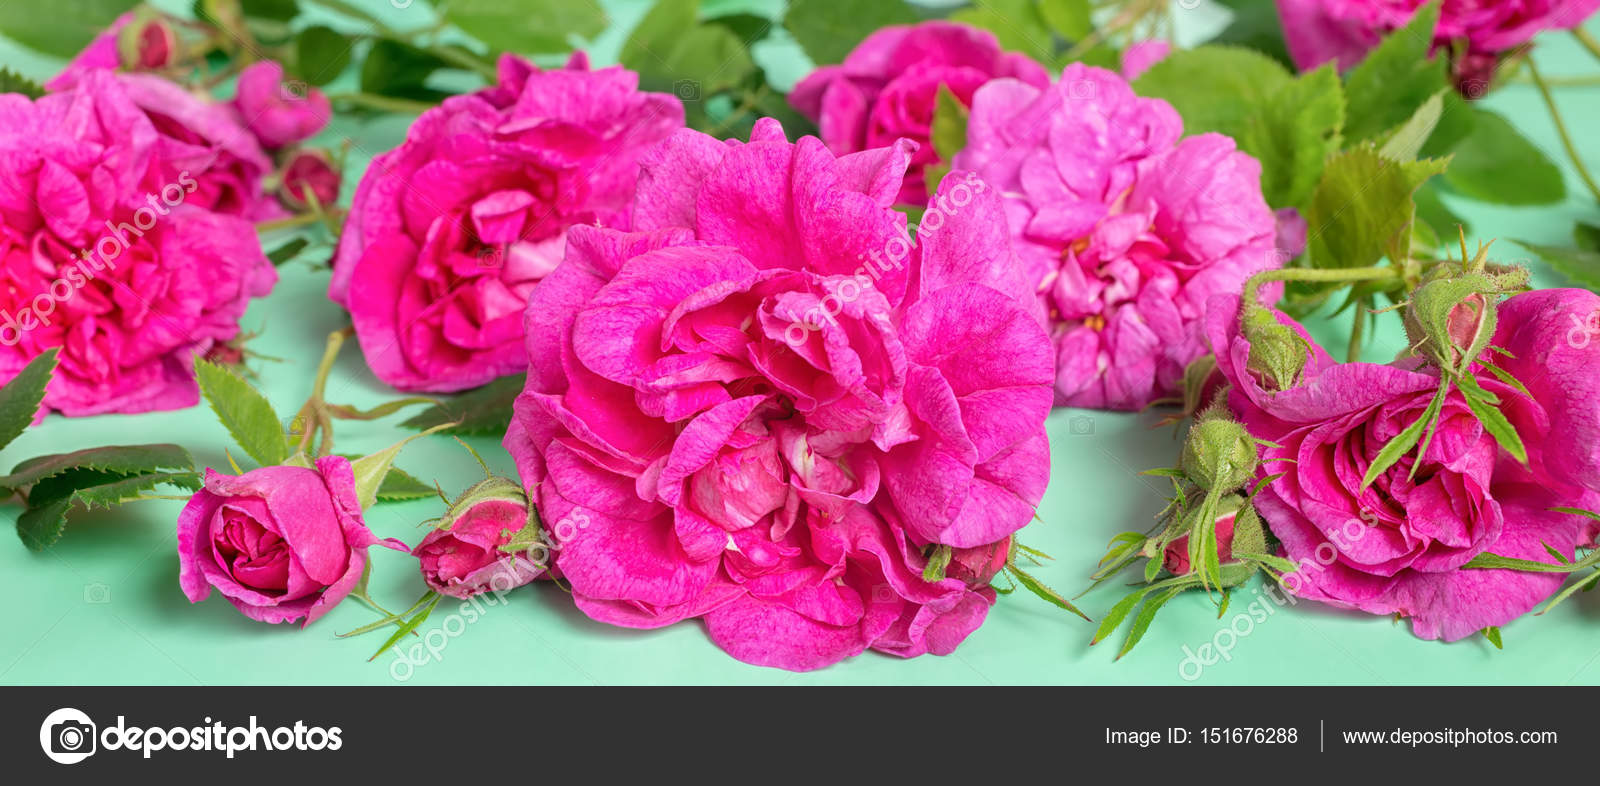 Beautiful Romantic Pink Rose Flowers With Buds And Leaves Lies O